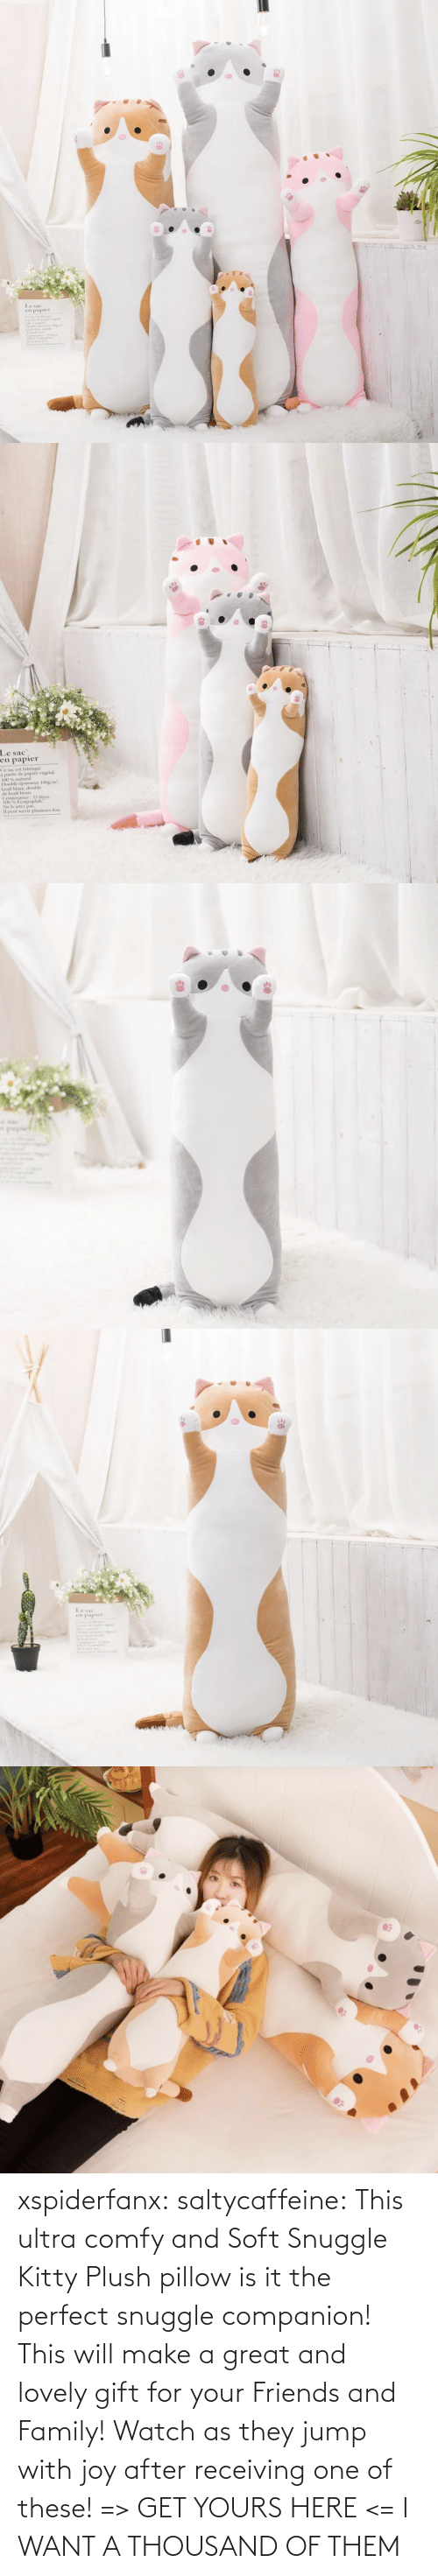 lovely: xspiderfanx:  saltycaffeine: This ultra comfy and Soft Snuggle Kitty Plush pillow is it the perfect snuggle companion! This will make a great and lovely gift for your Friends and Family! Watch as they jump with joy after receiving one of these! => GET YOURS HERE <=    I WANT A THOUSAND OF THEM